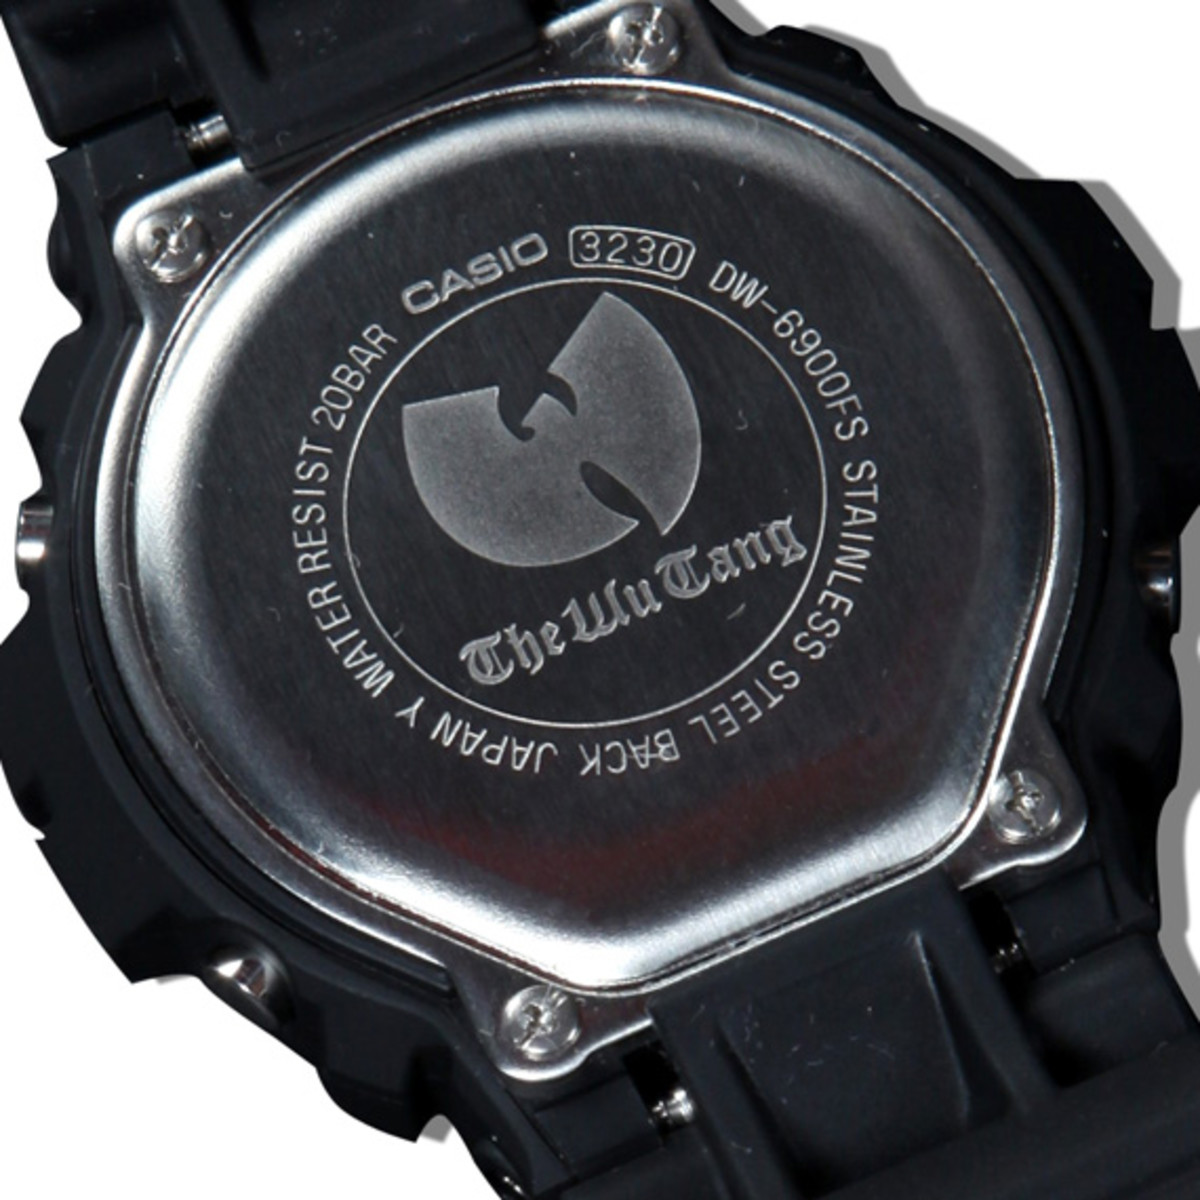 wu-tang-clan-casio-g-shock-dw-6900fswtc-1gjcu-watch-04